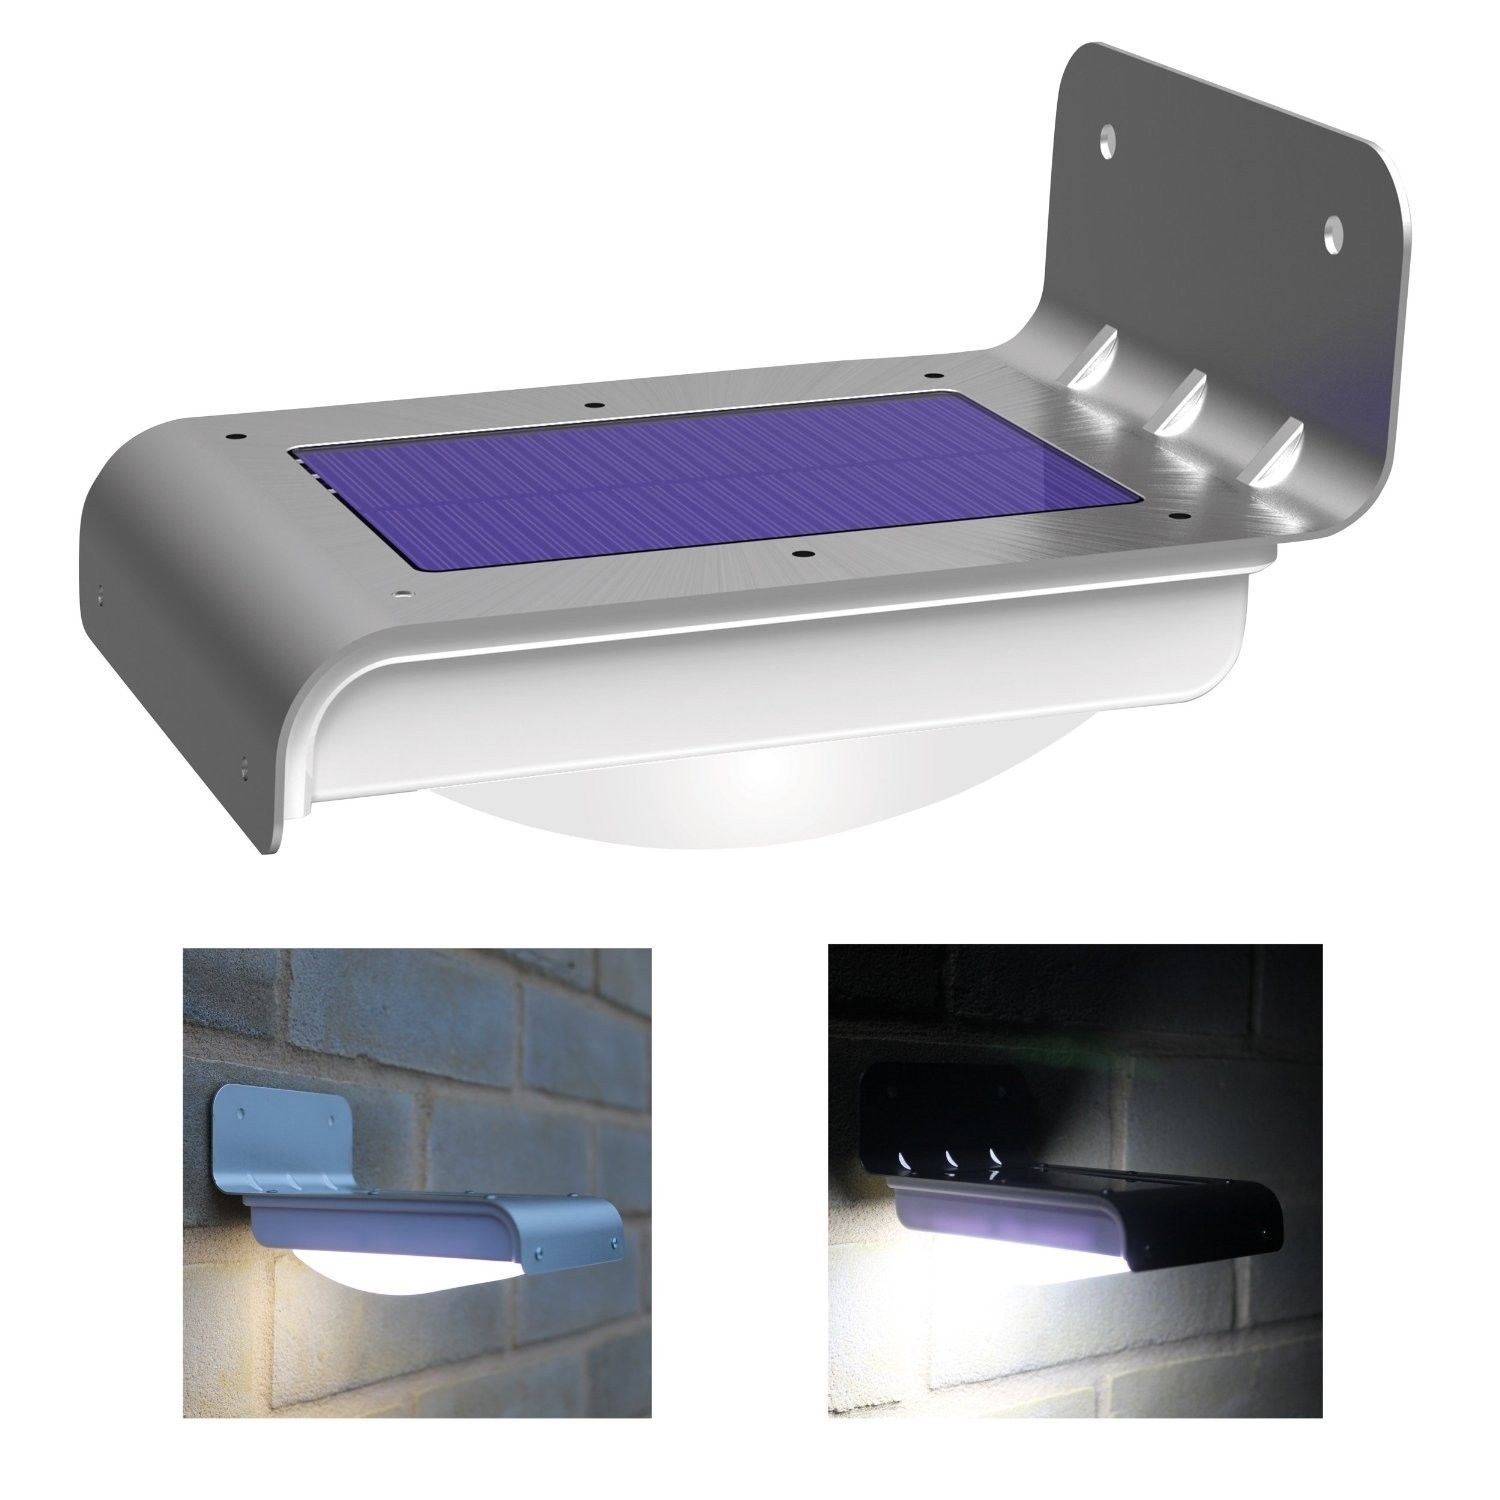 most solar the market motion lumen htm sensor lighting powerful pir intelligent in with light security flood guardian